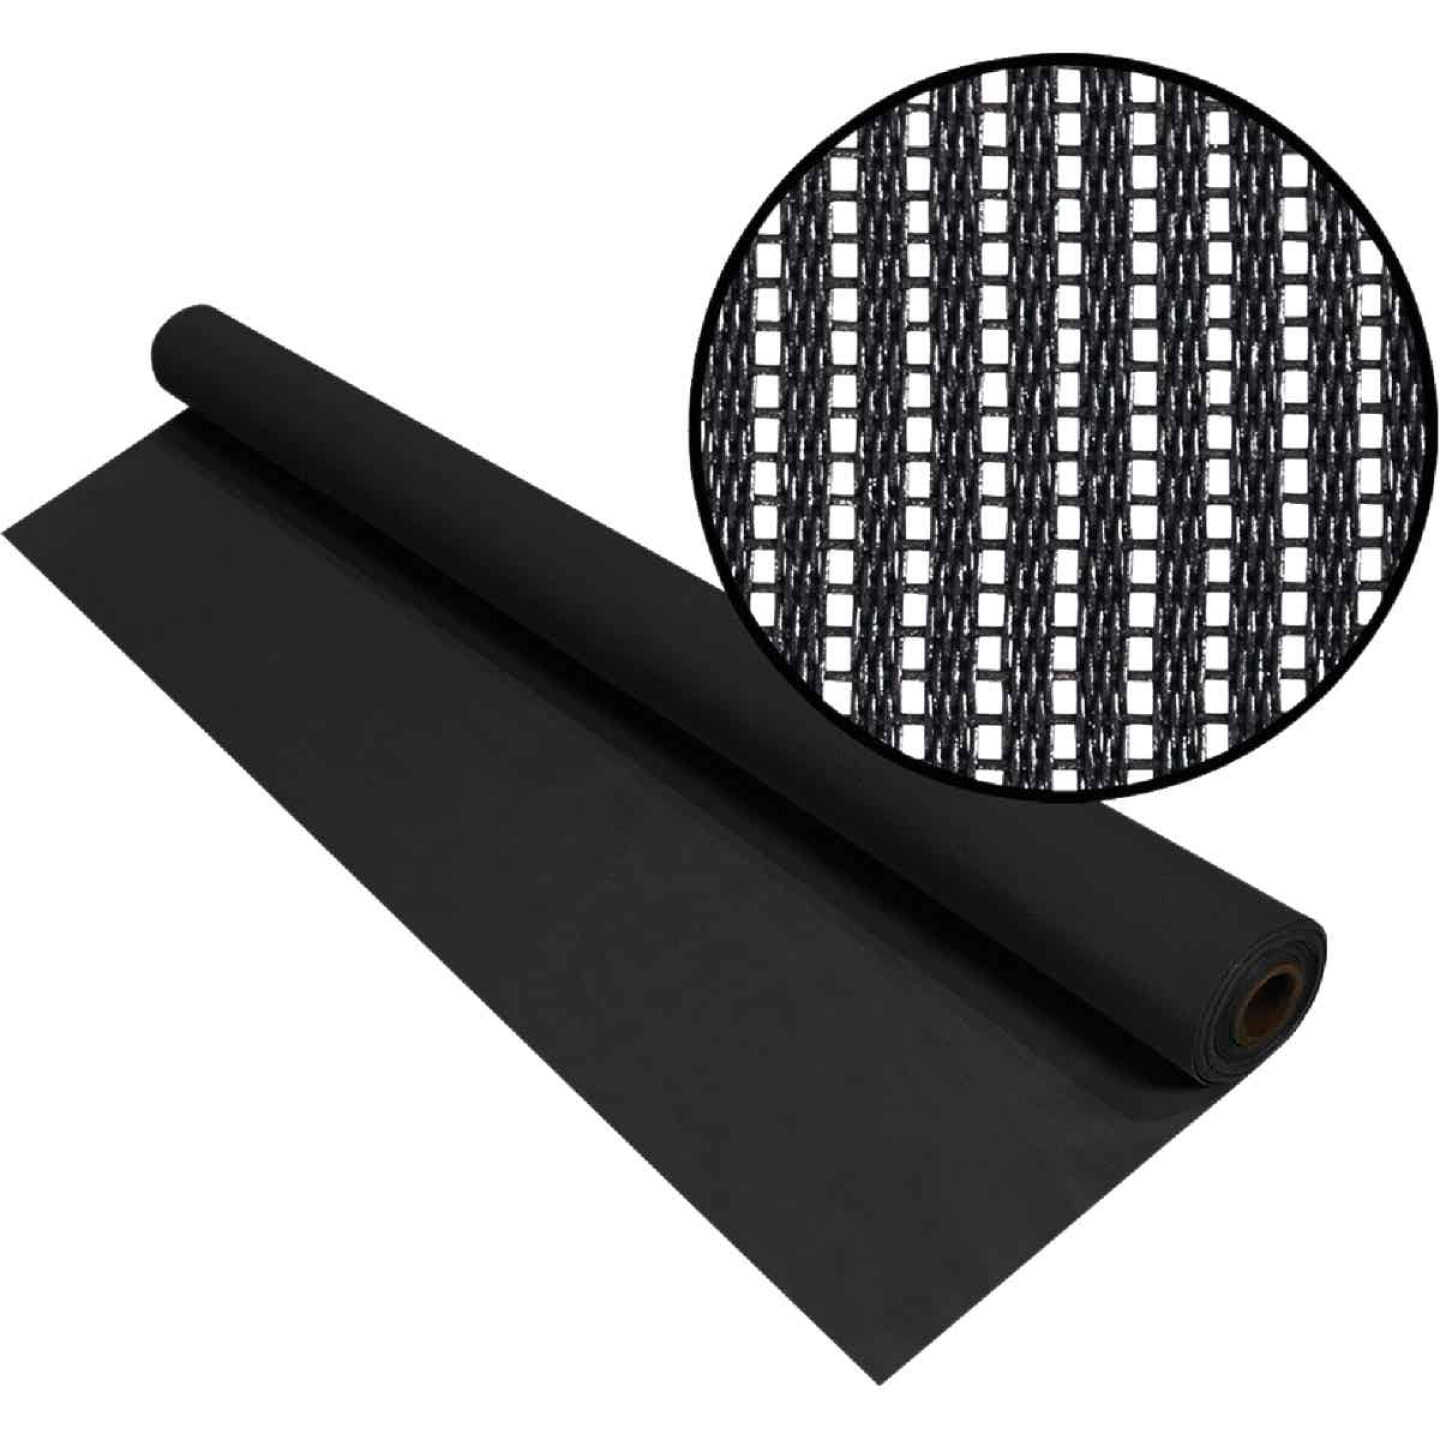 Phifer 36 In. x 100 Ft. Charcoal SunScreen Image 1